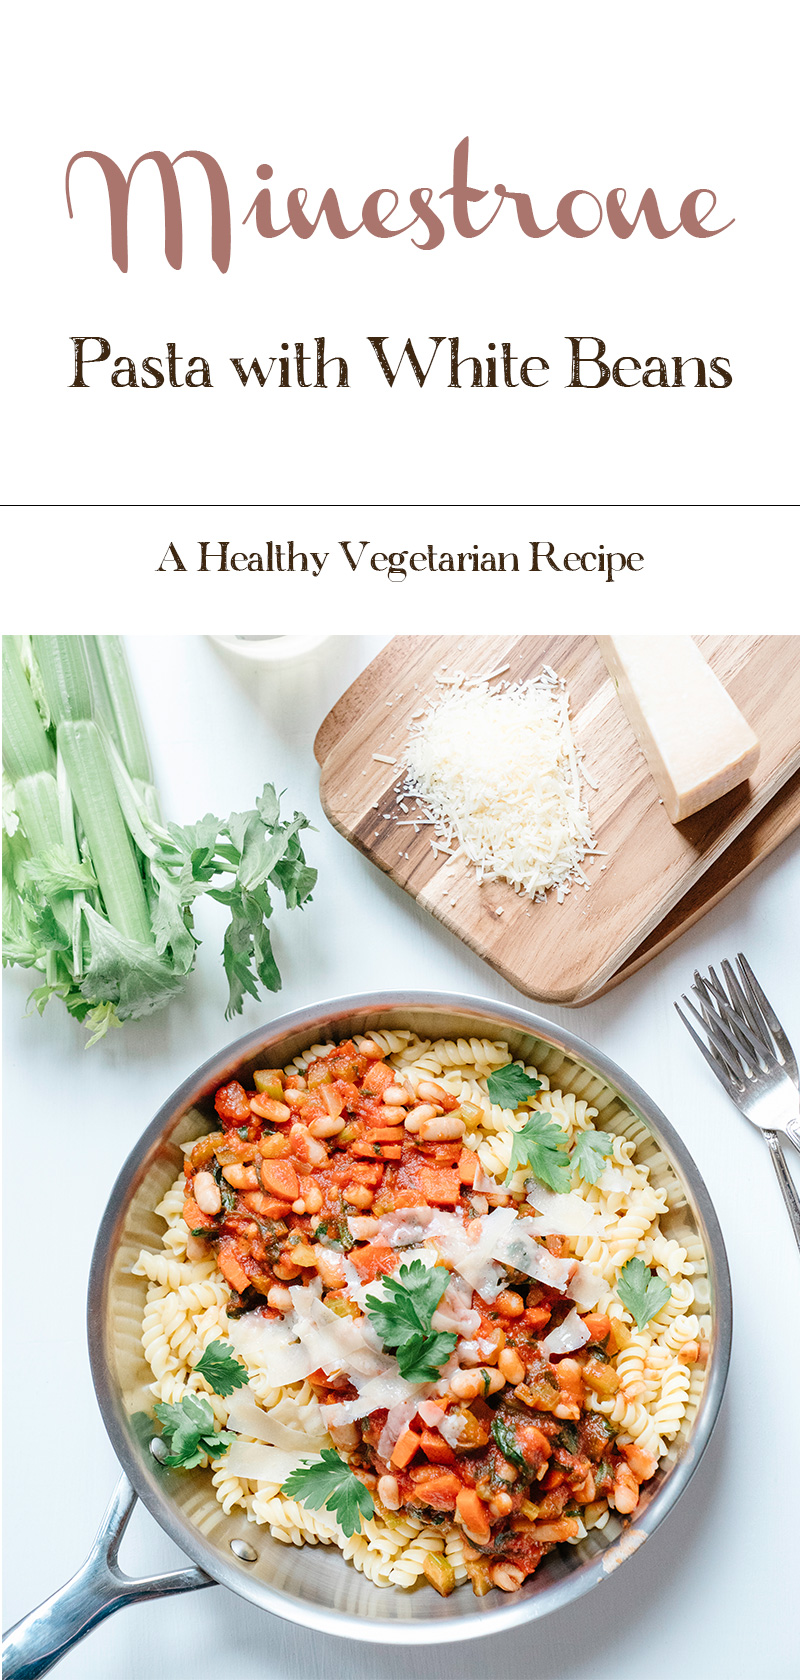 Minestrone-Pasta-with-White-Beans-Healthy-Vegetarian-Recipe